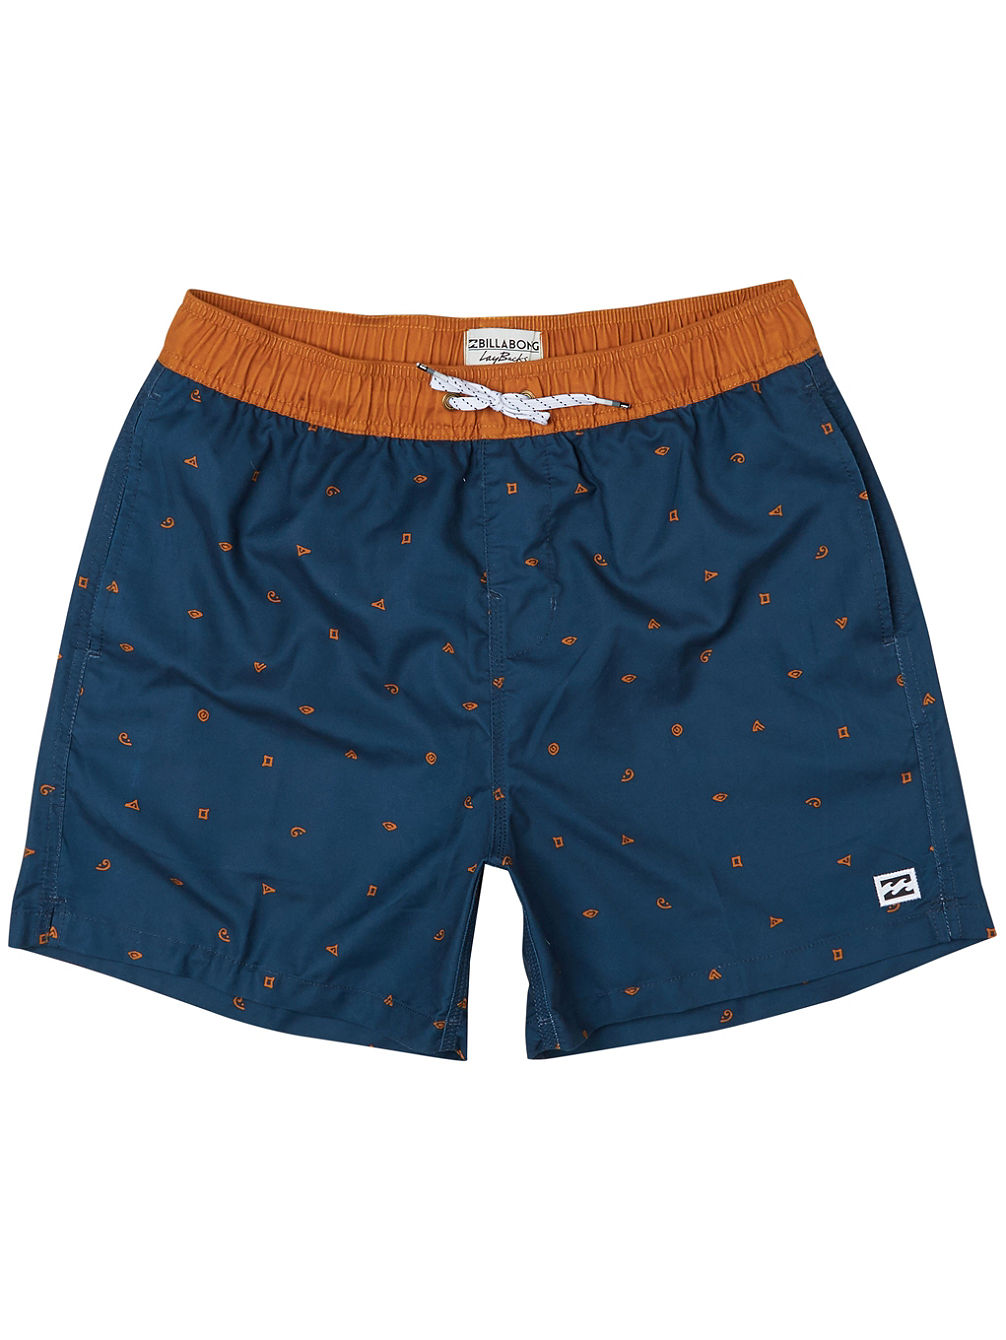 "Sundays Lb 16"" Boardshorts"